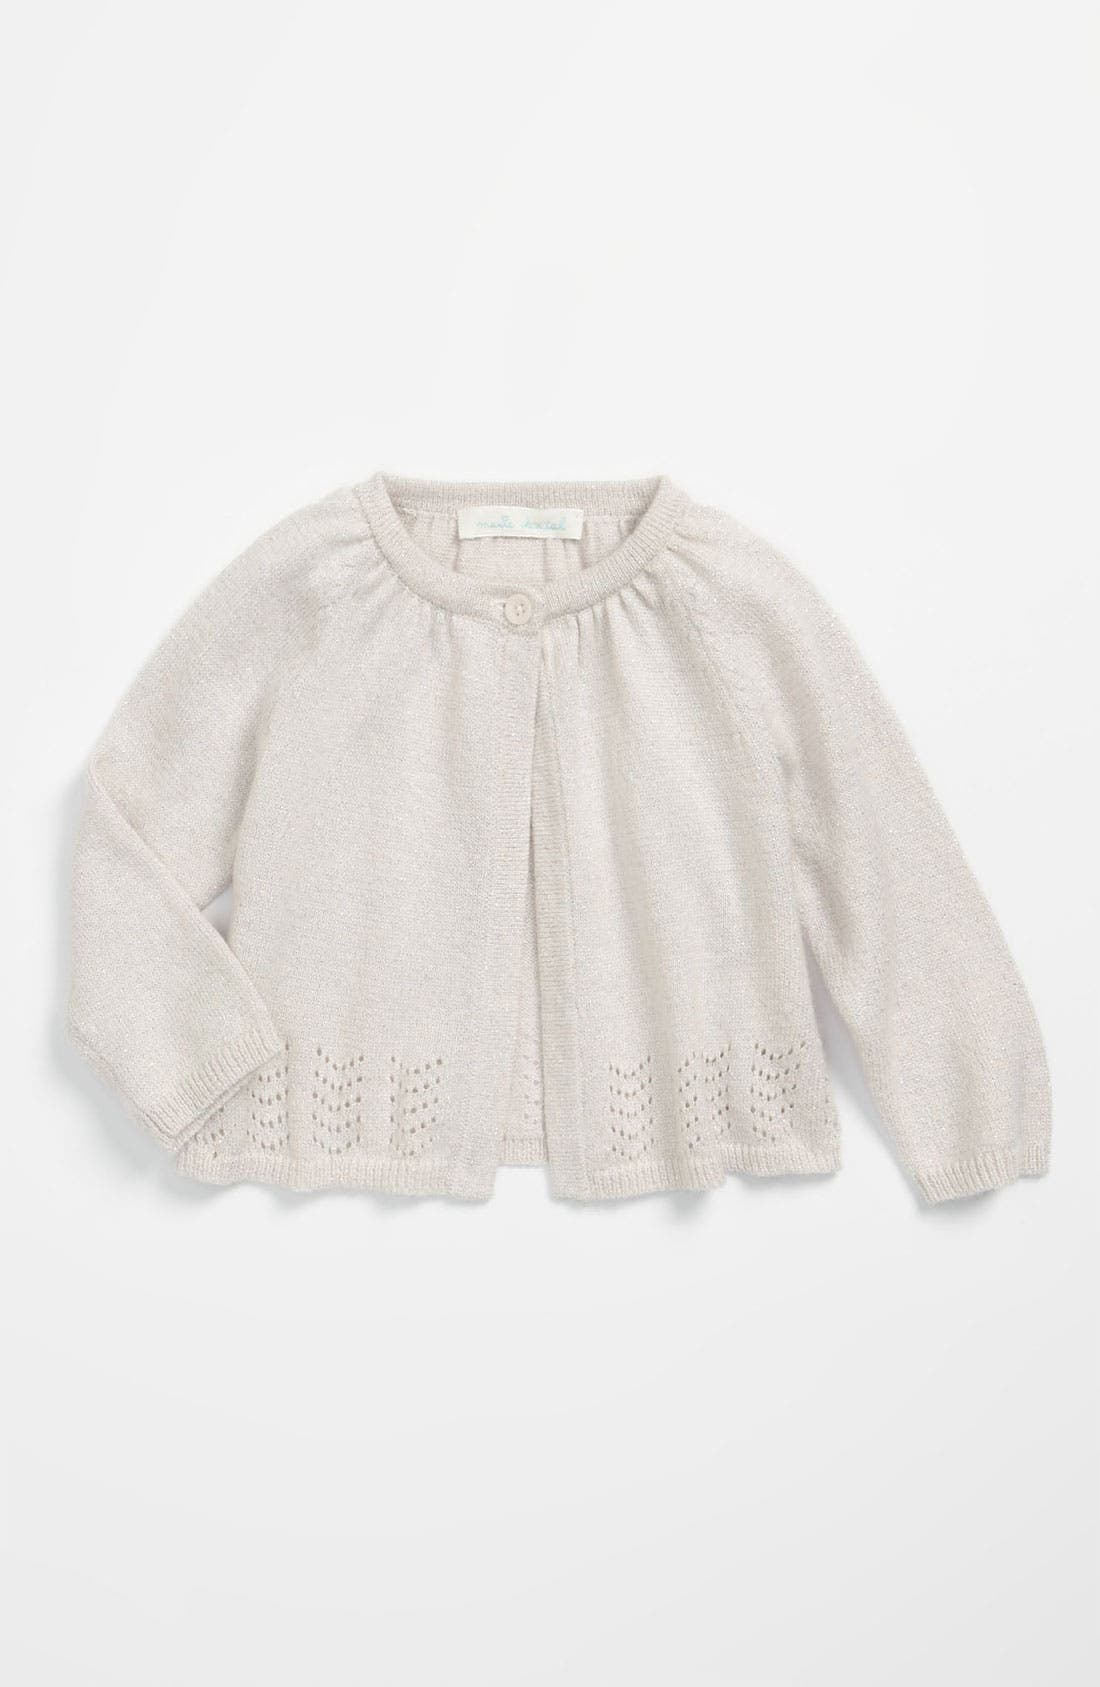 Alternate Image 1 Selected - Marie-Chantal 'Baby' Swing Cardigan (Infant)